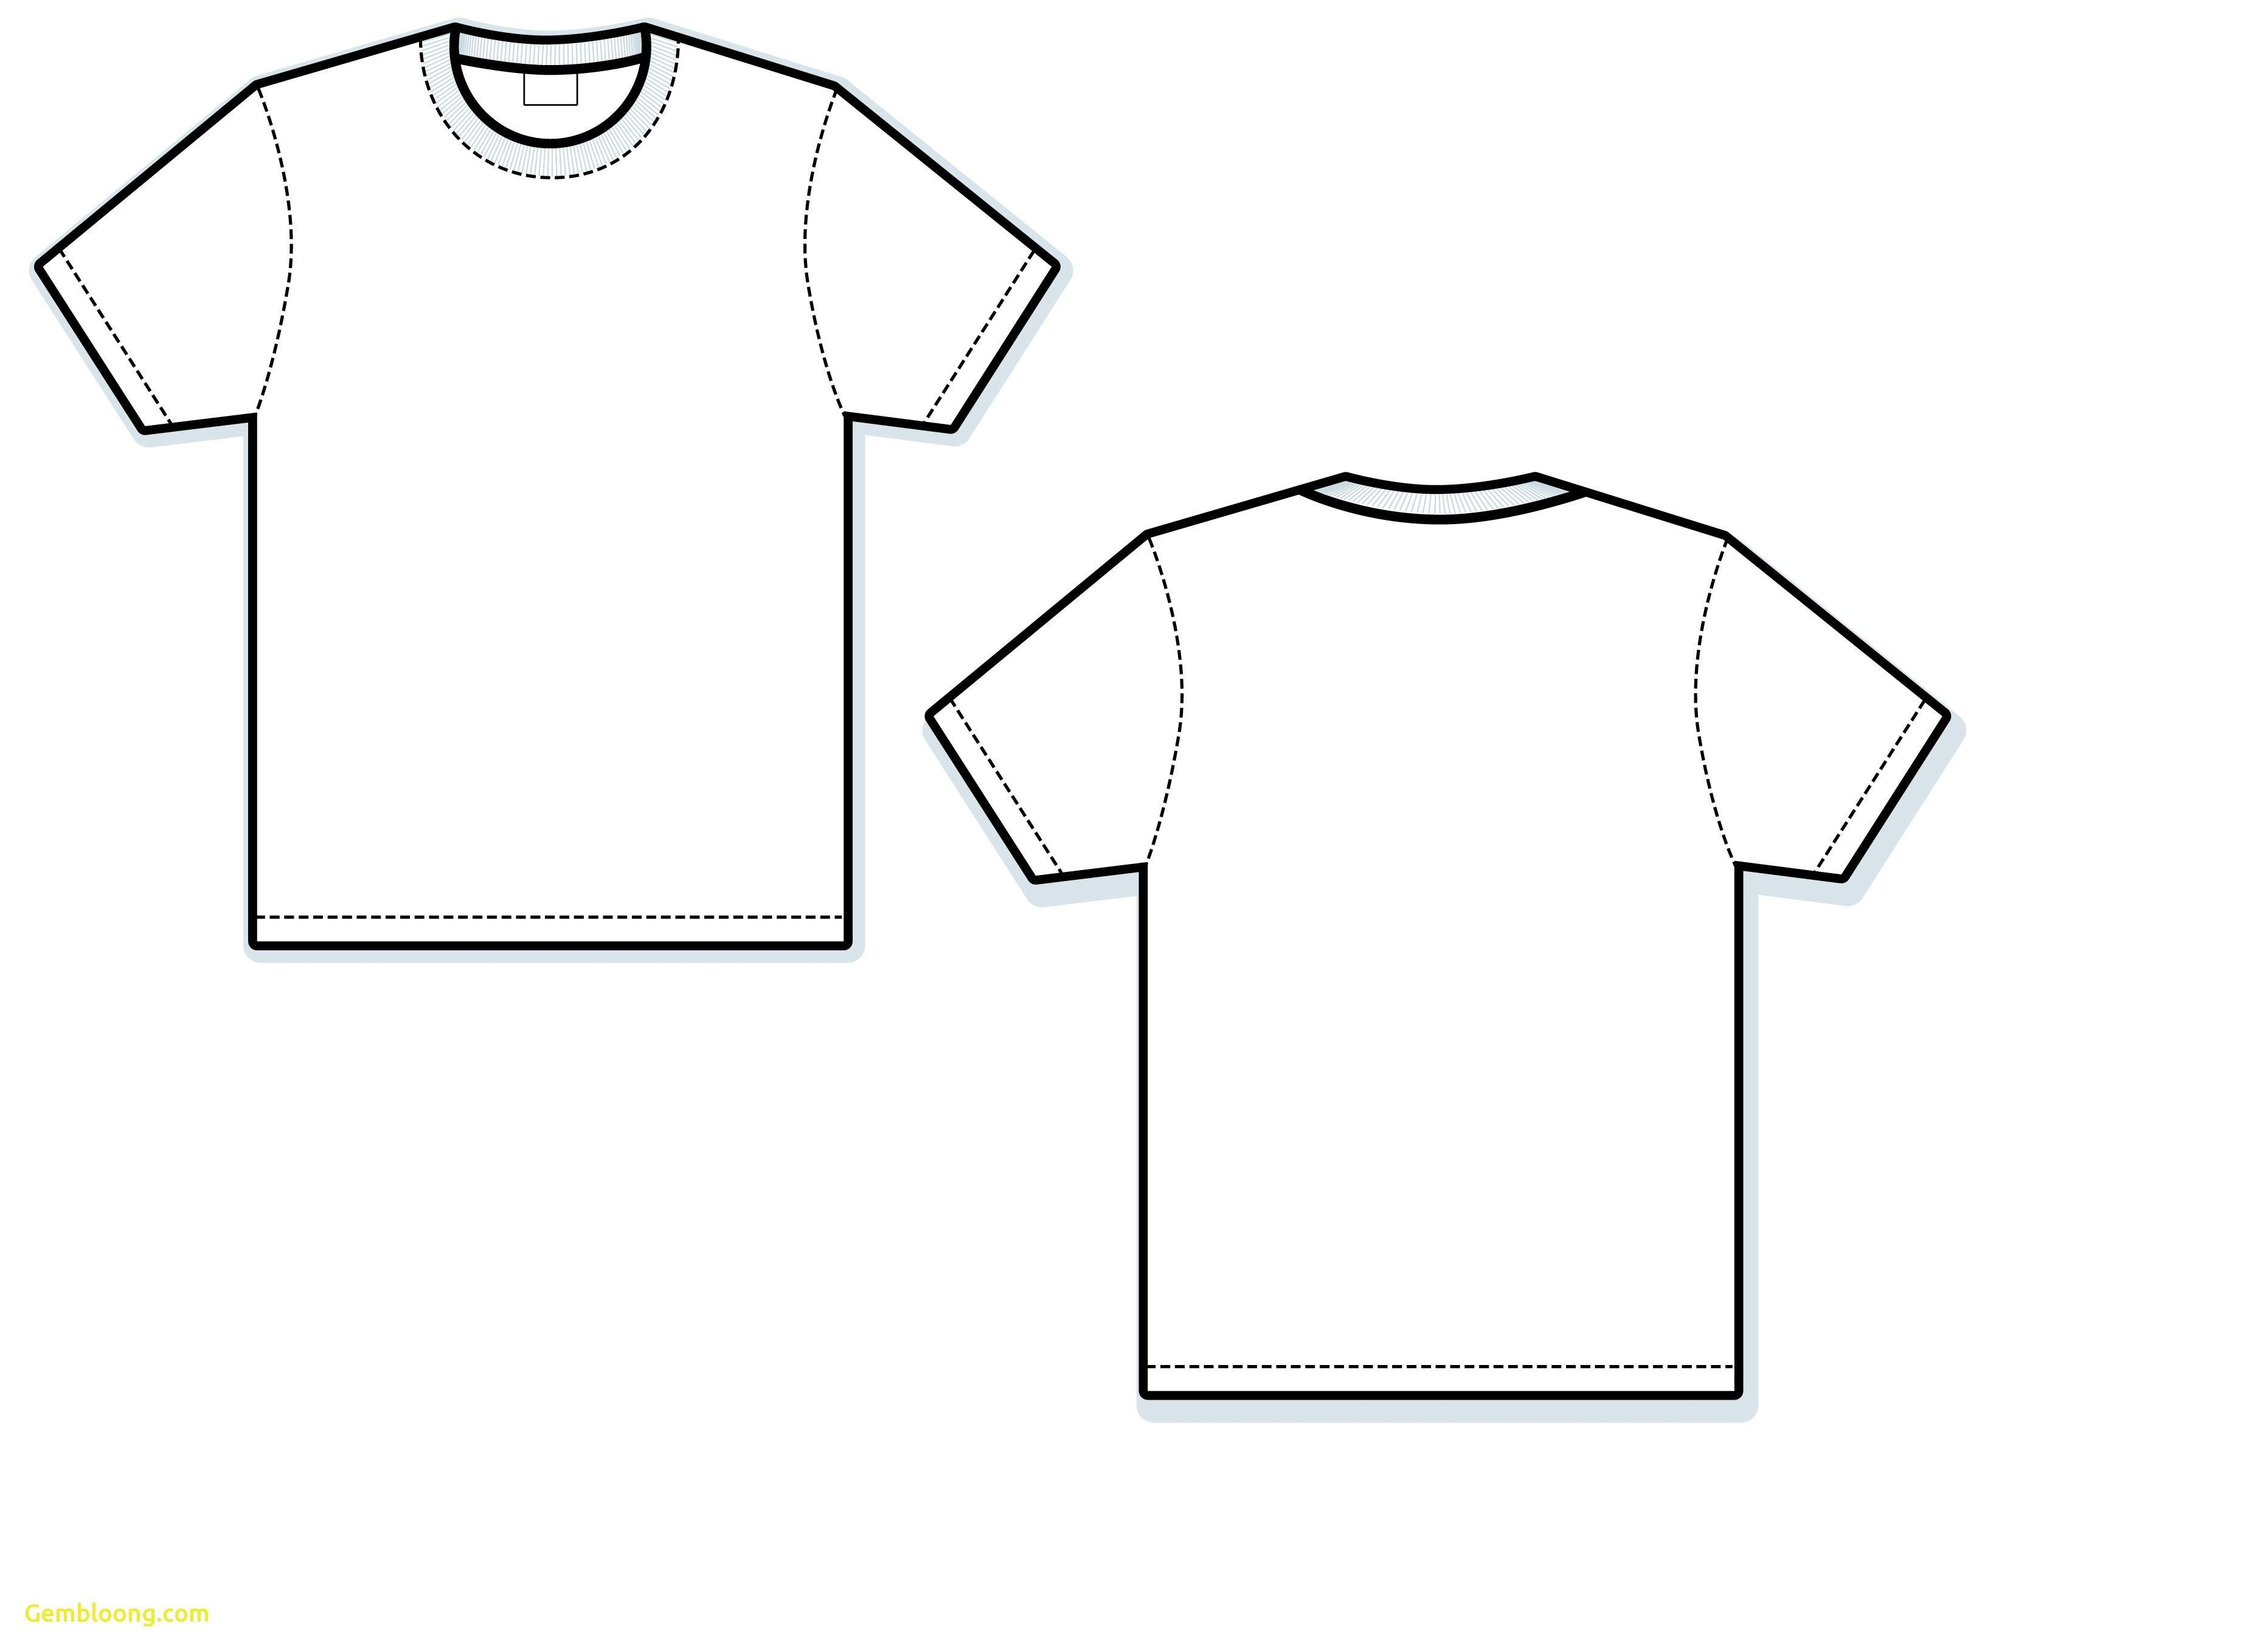 001 Wonderful Blank Tee Shirt Template Photo  T Design Pdf Free T-shirt Front And Back DownloadFull